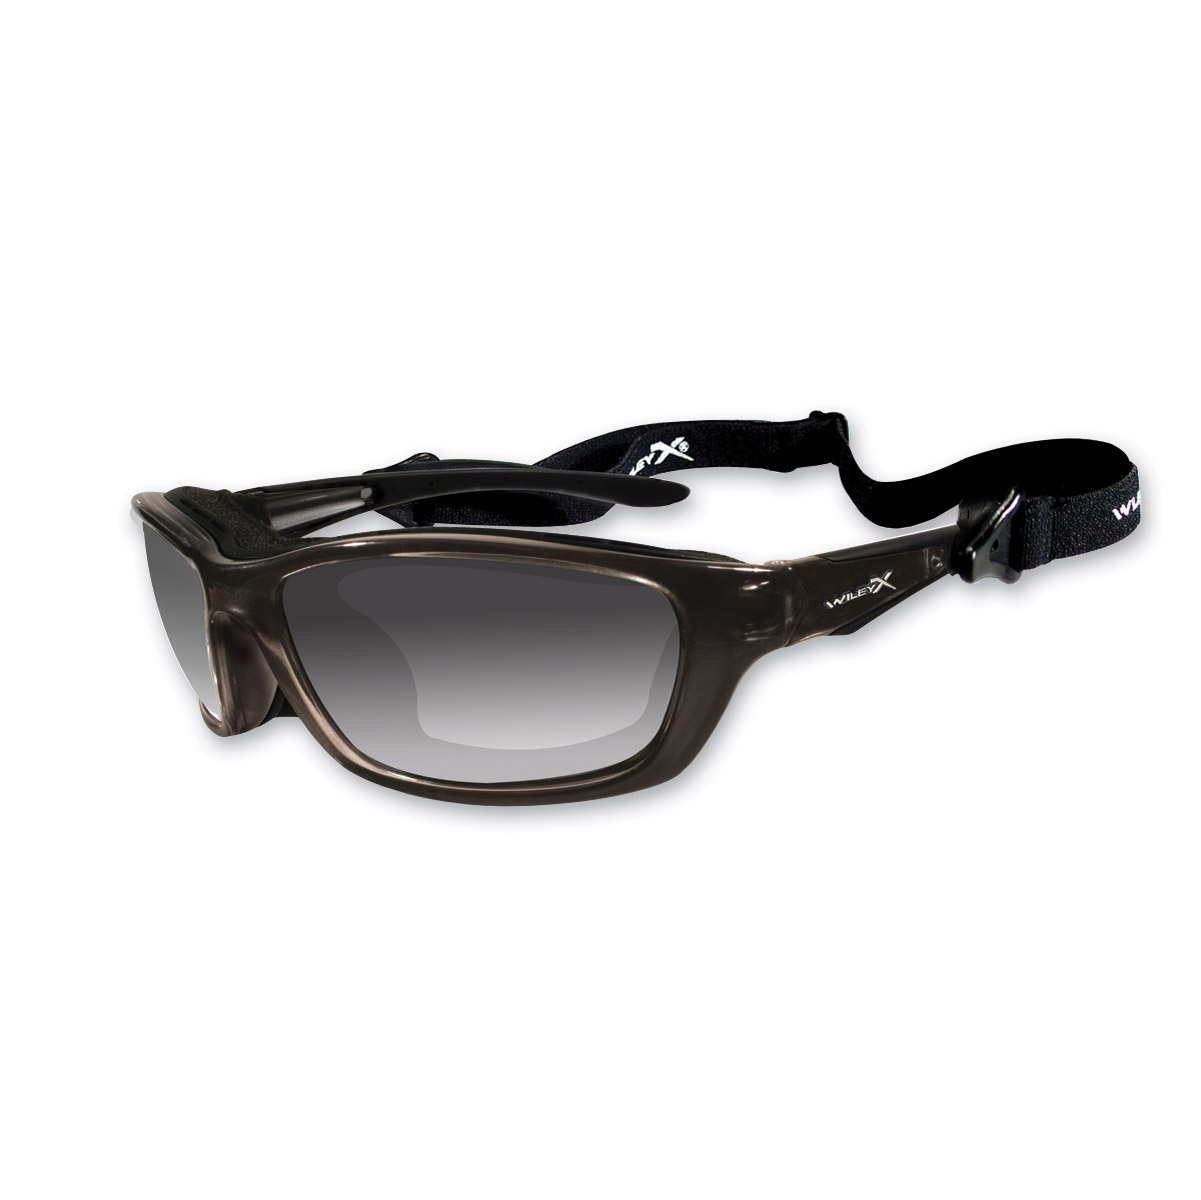 Wiley X Brick Sunglasses with Light-Adjusting Lens